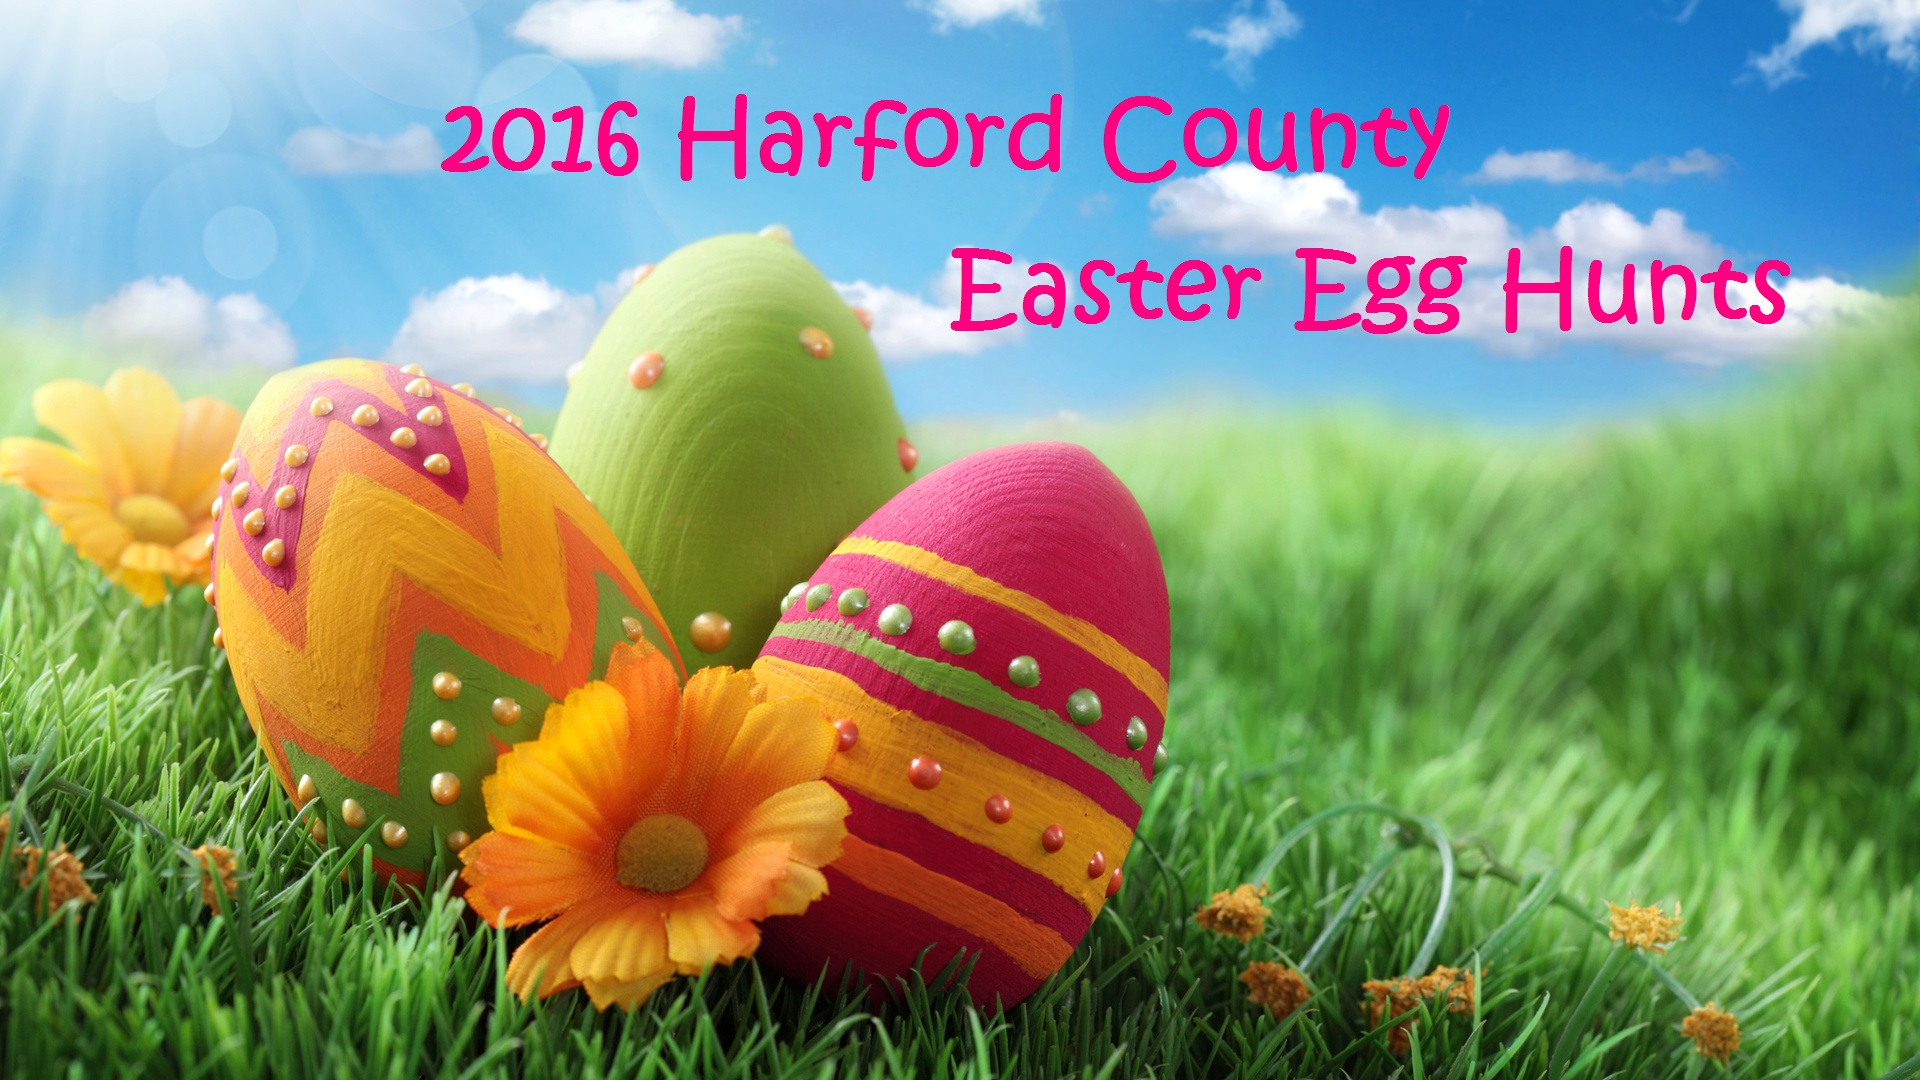 2016 Harford County Easter Egg Hunts